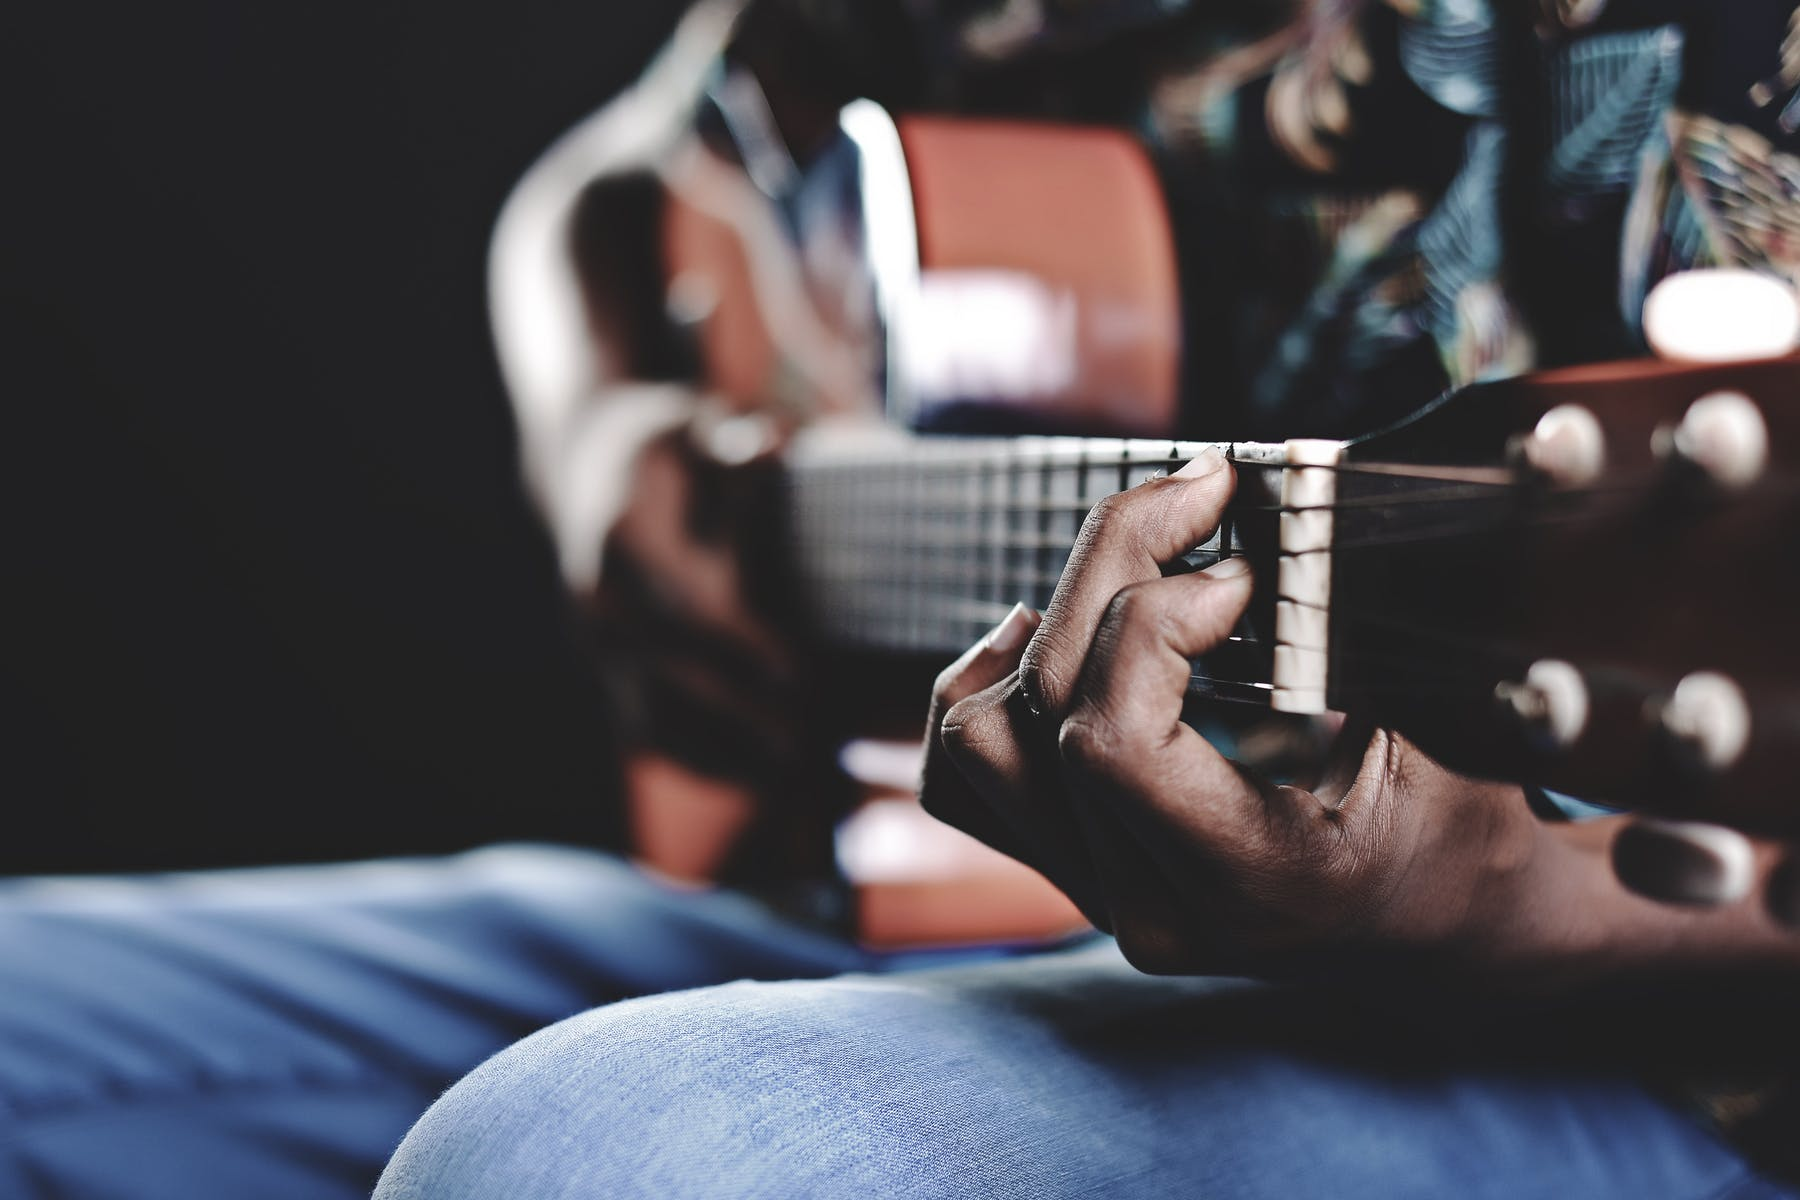 a close up of a person holding a guitar